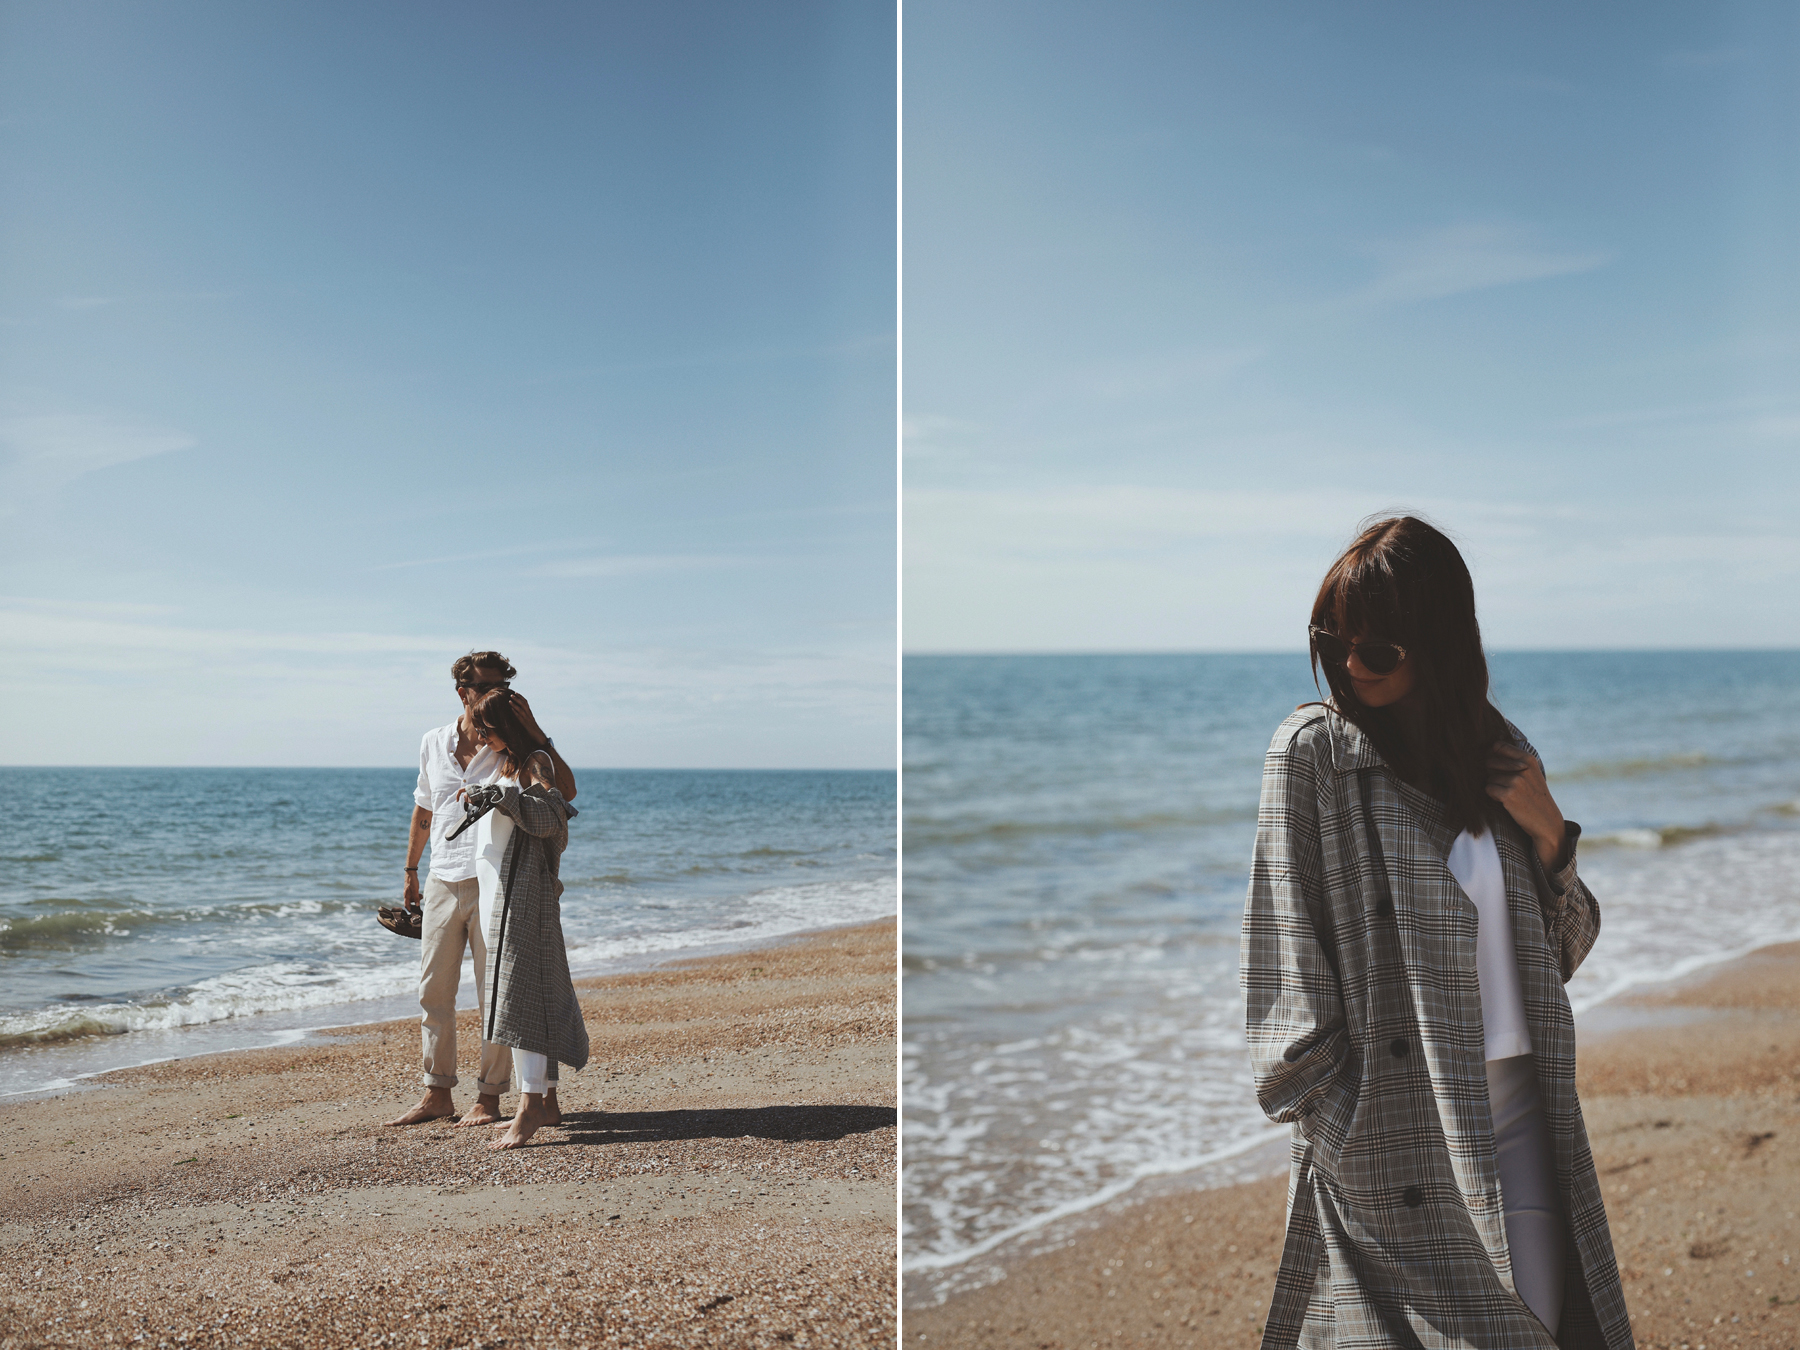 A coat for cold summer days | CATS & DOGS - A Couple's Fashion, Beauty and Lifestyle Diary